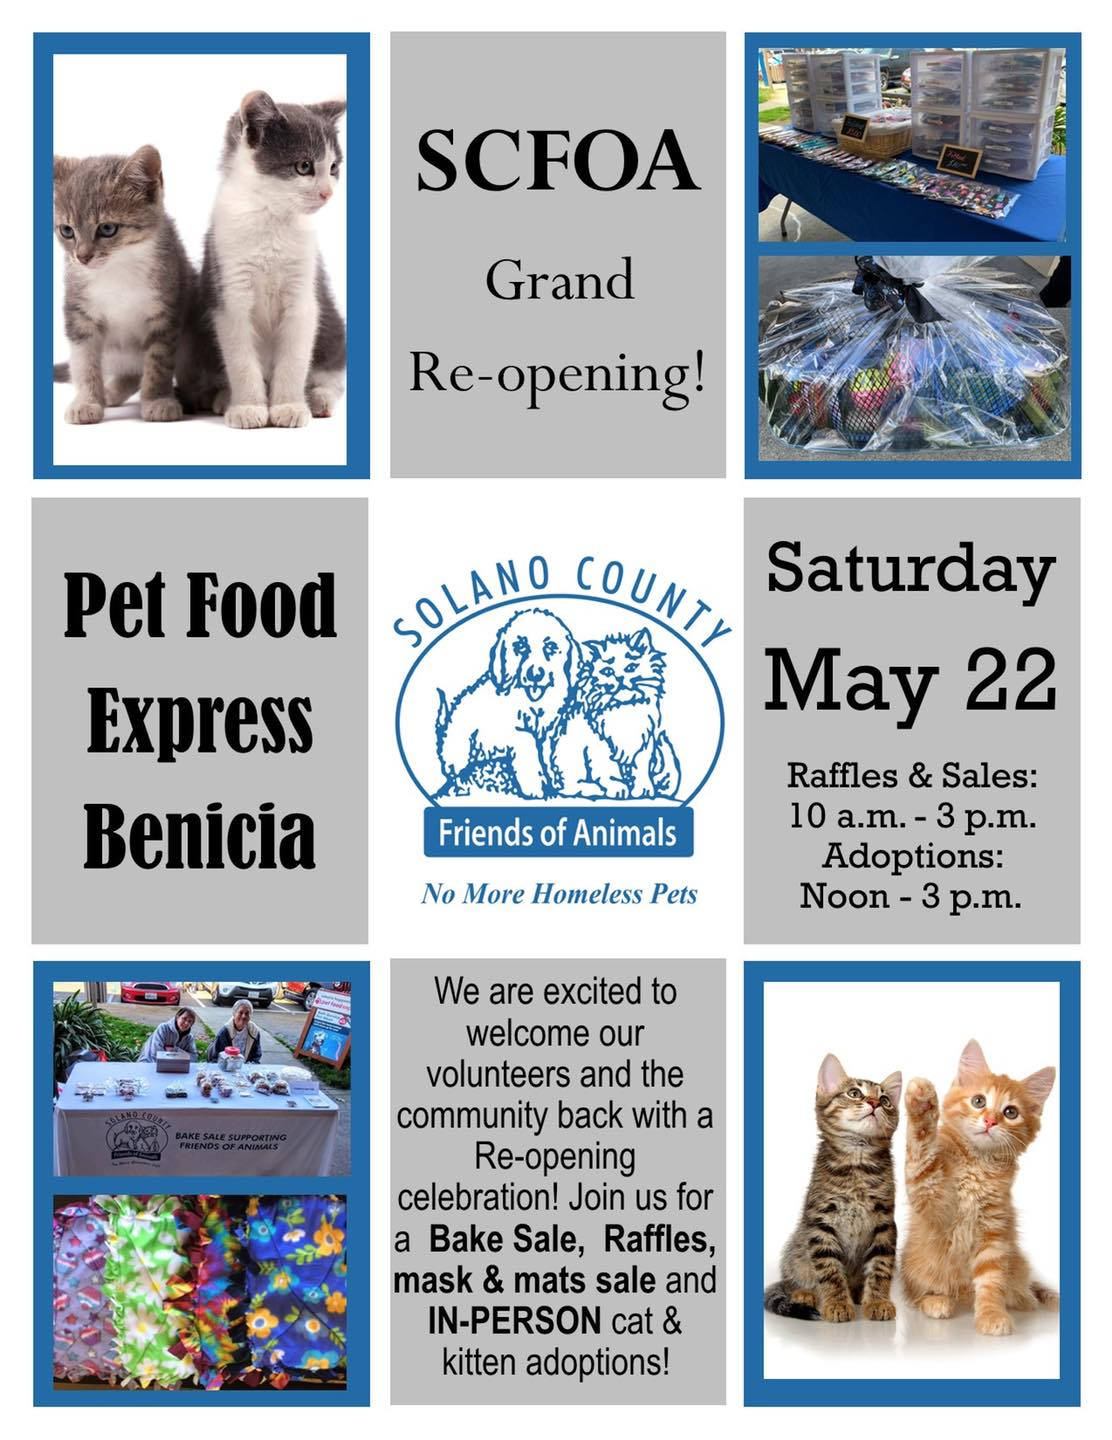 MAY 22 IN-PERSON ADOPTION EVENT